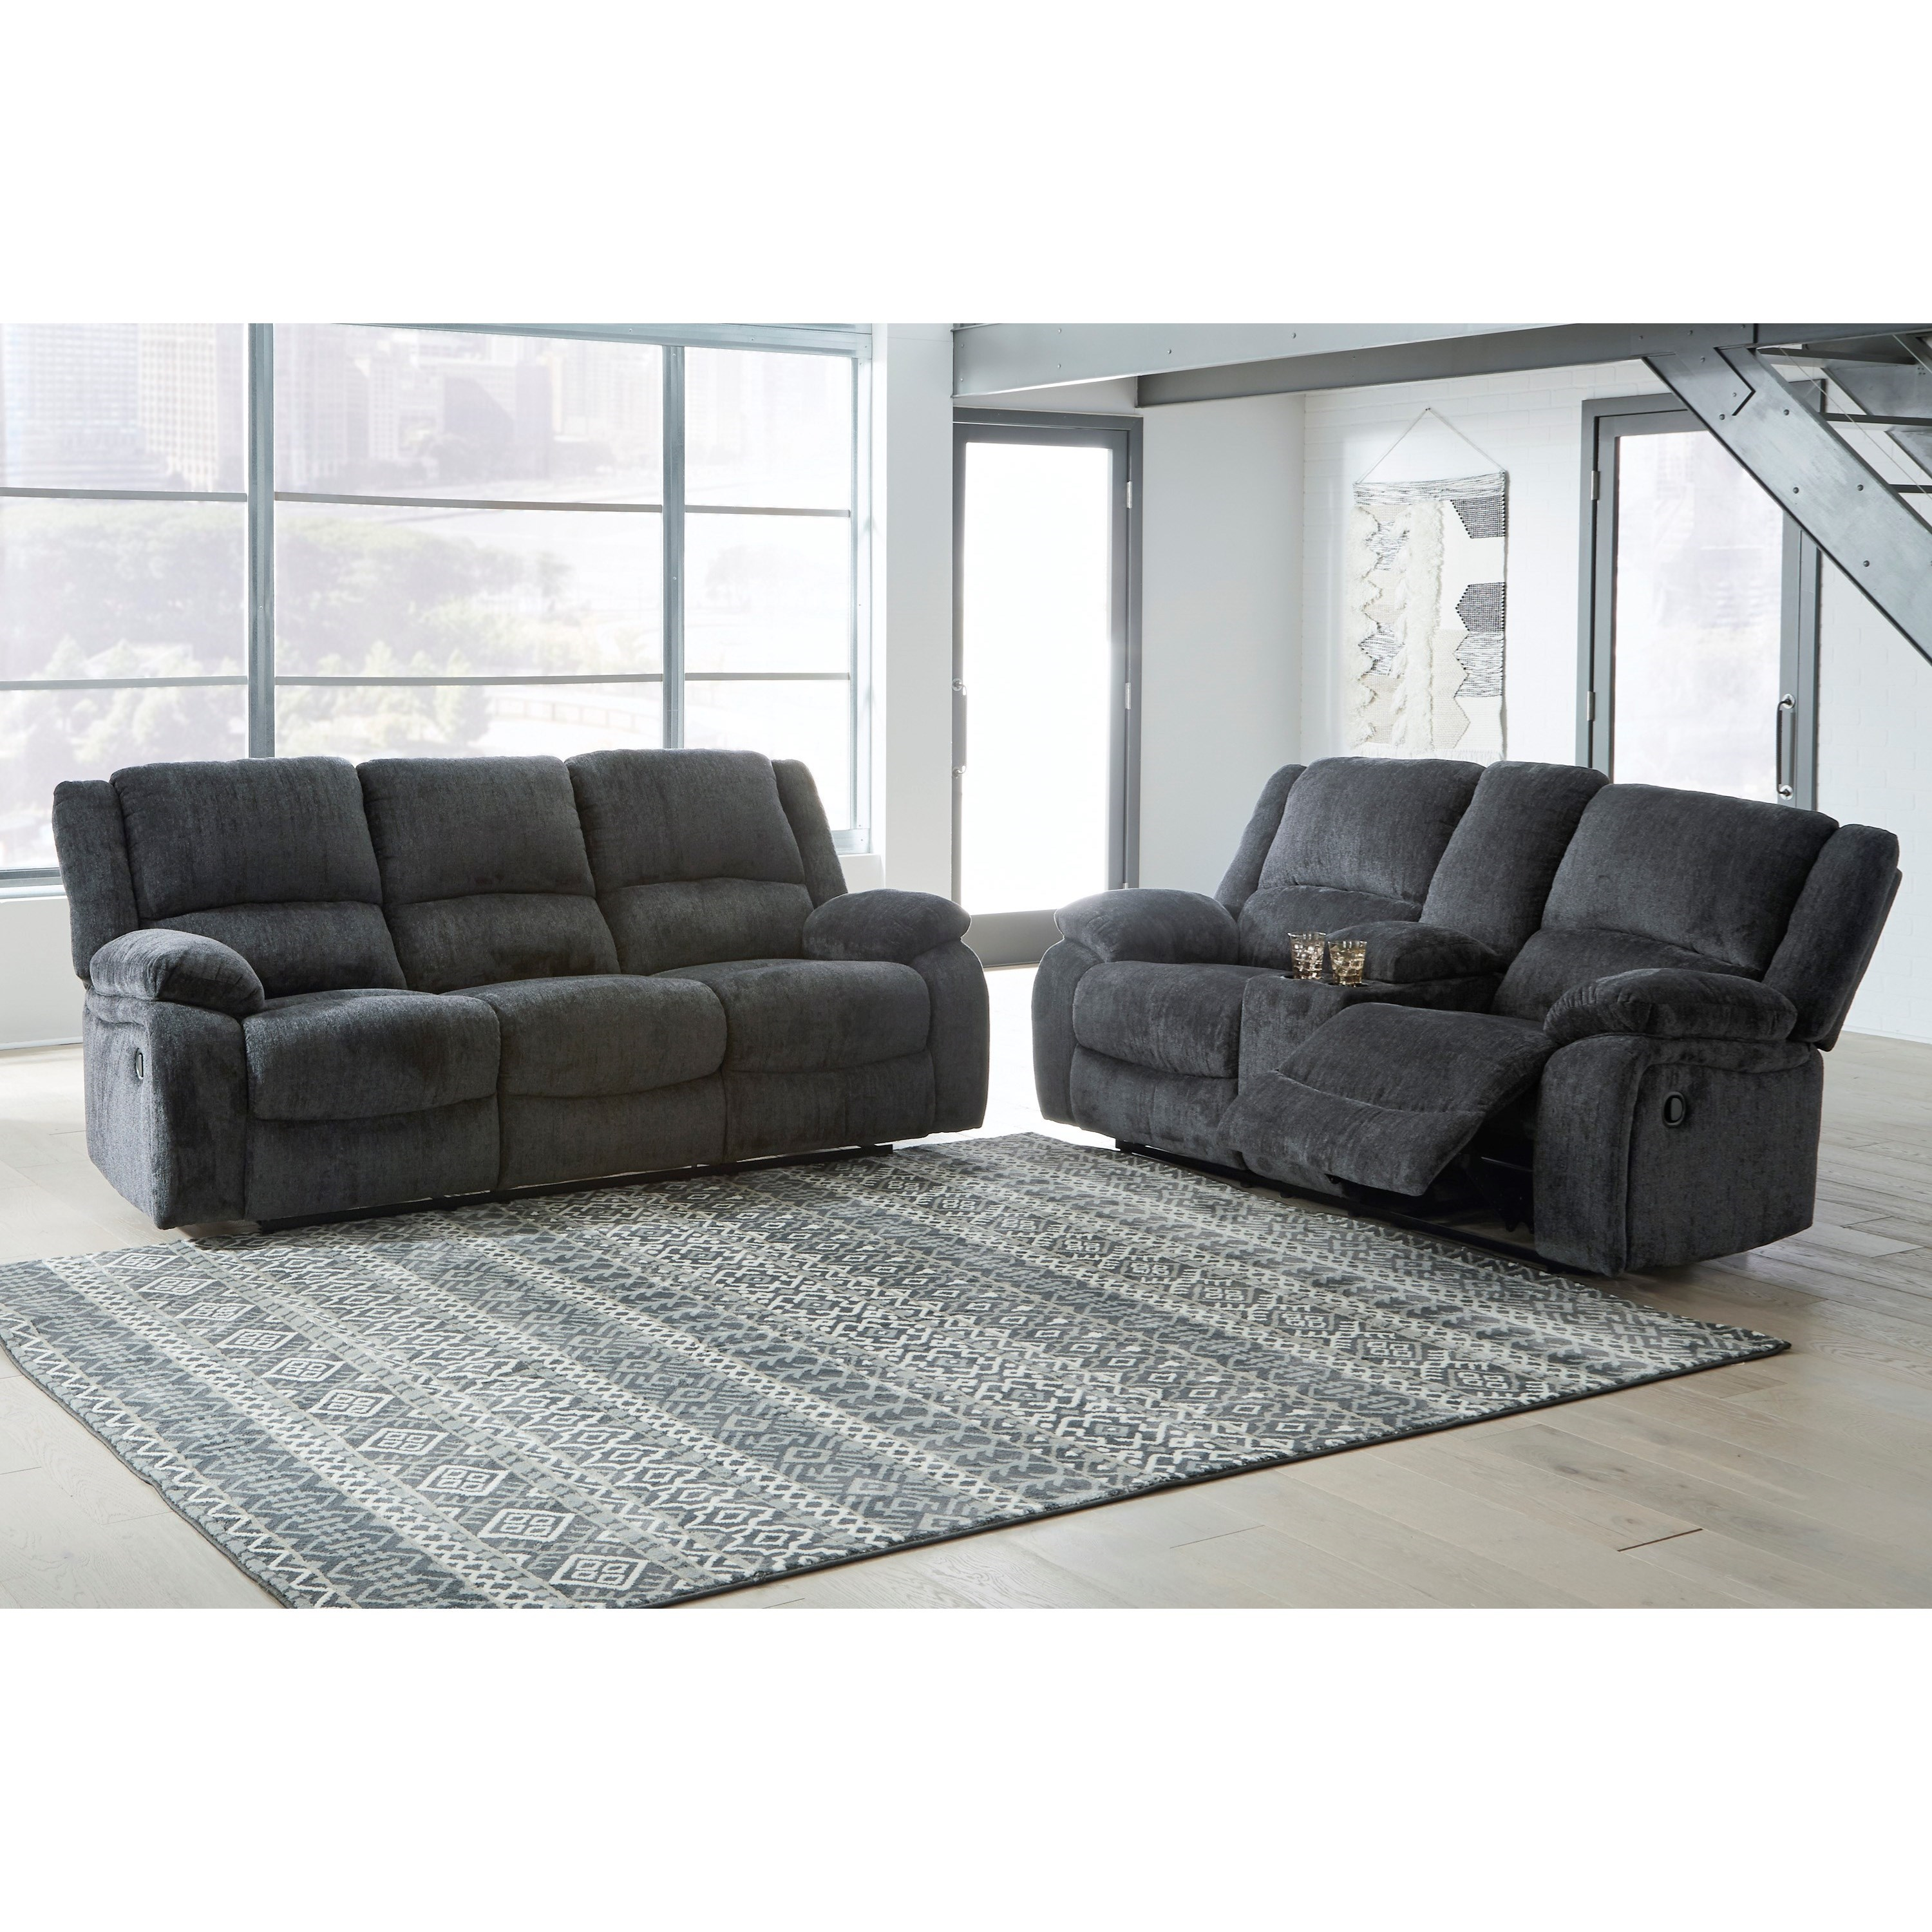 Draycoll Power Reclining Living Room Group by Signature Design by Ashley at Value City Furniture